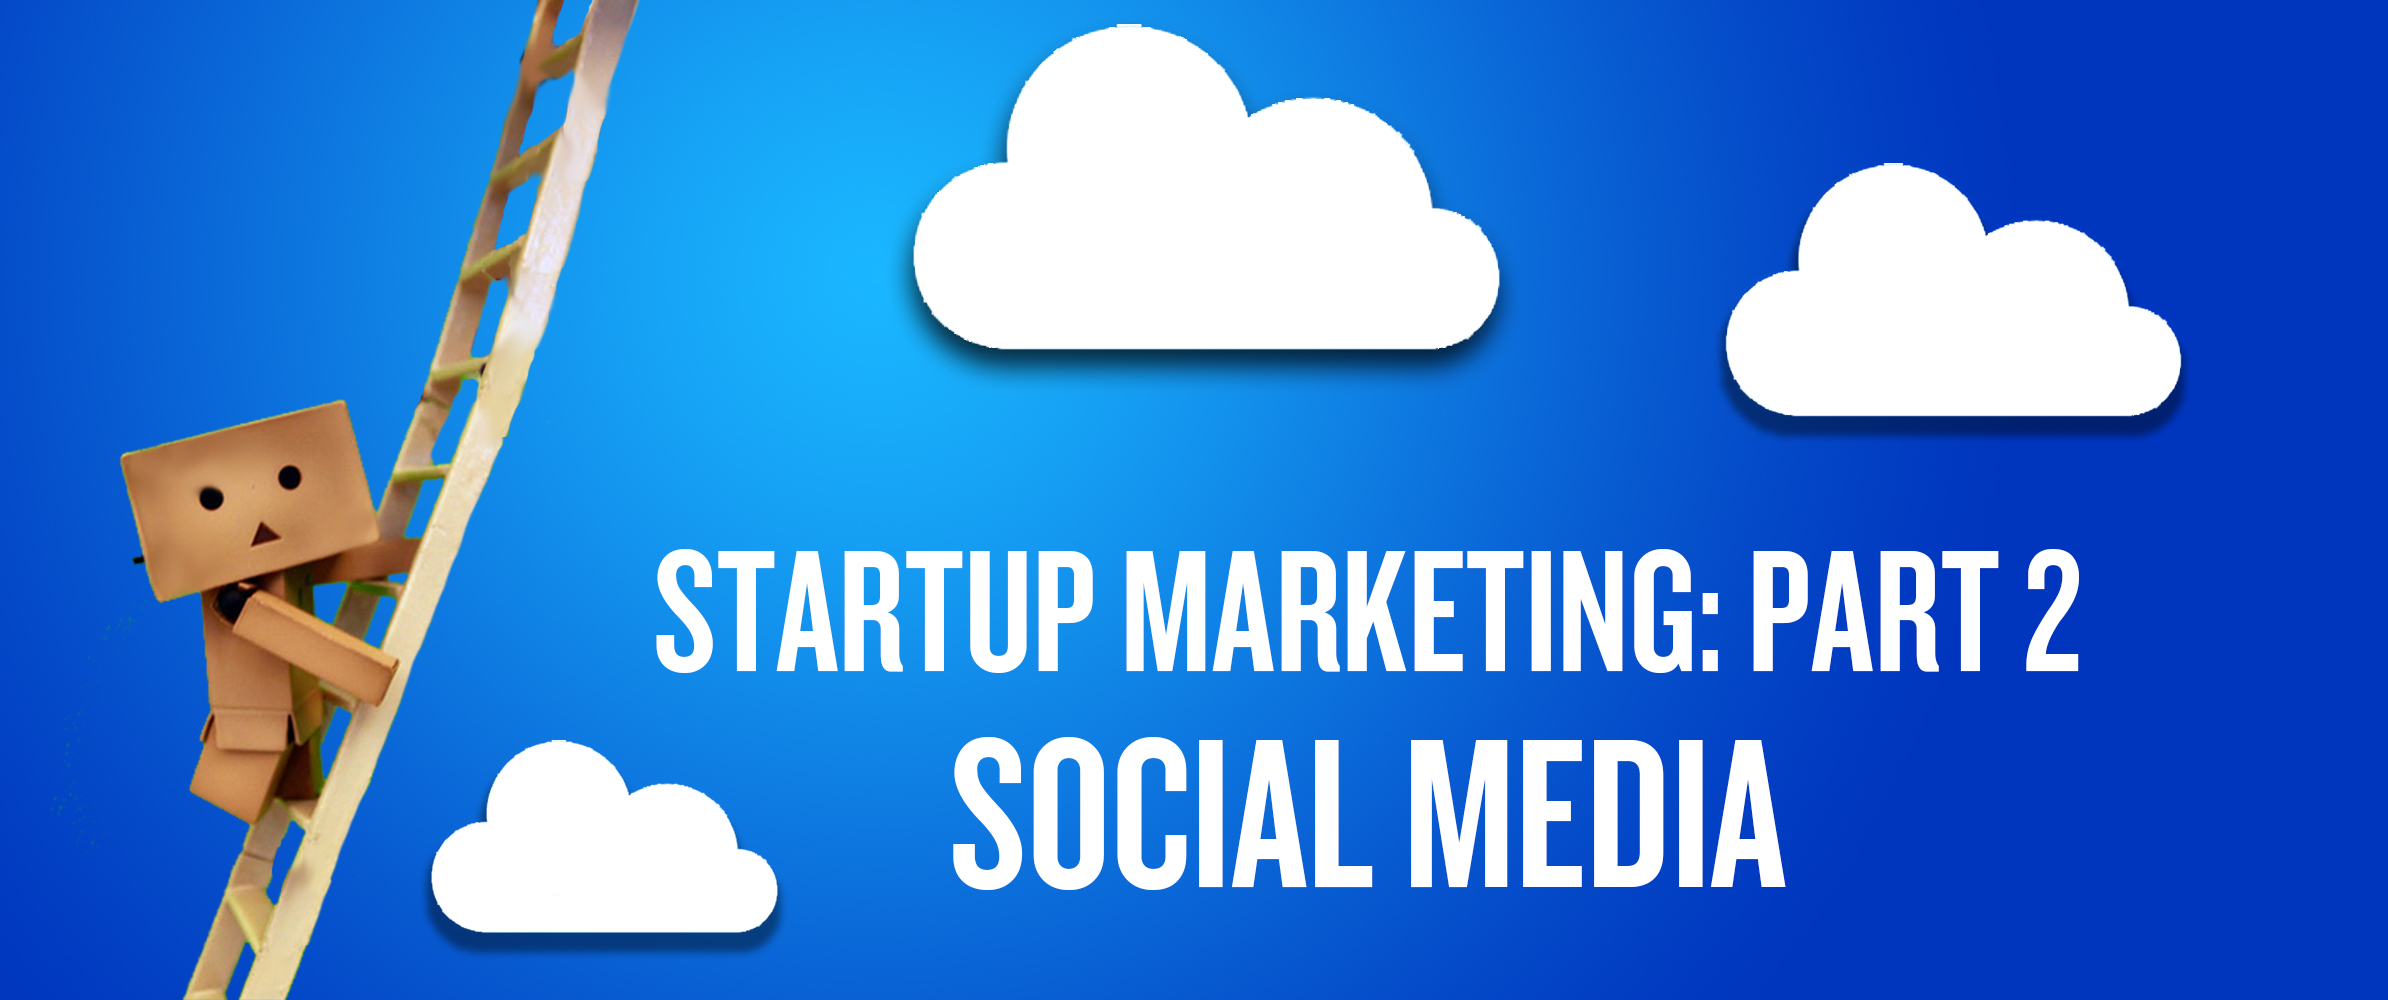 Startup Marketing Social Media